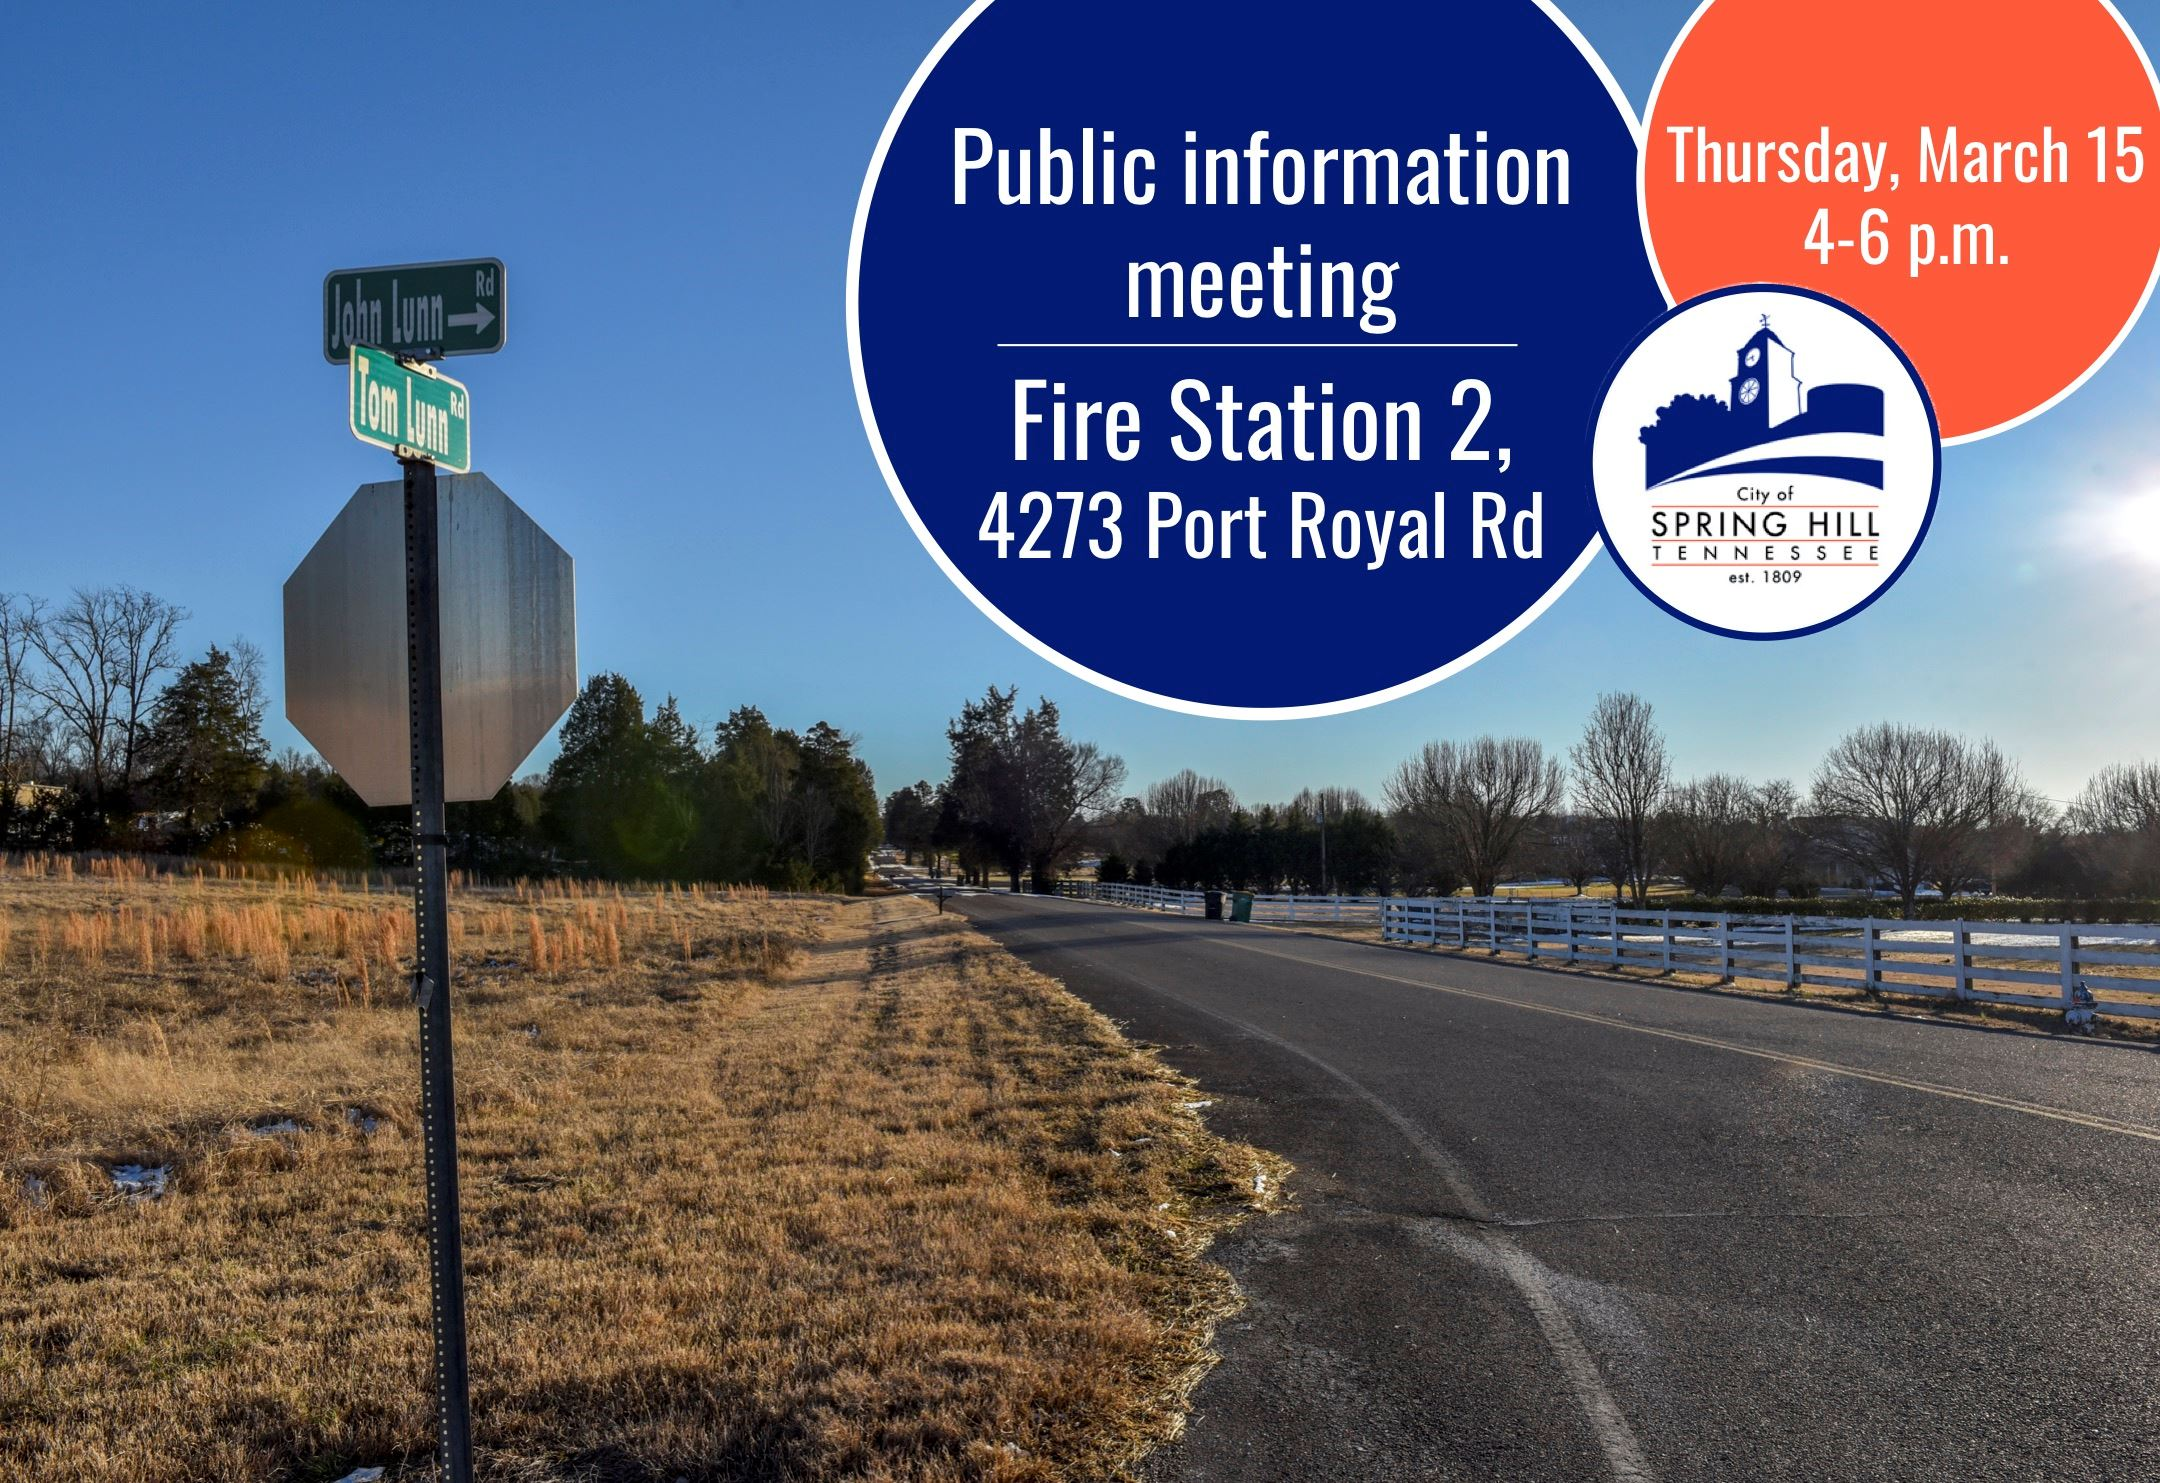 Tom Lunn Road informational meeting